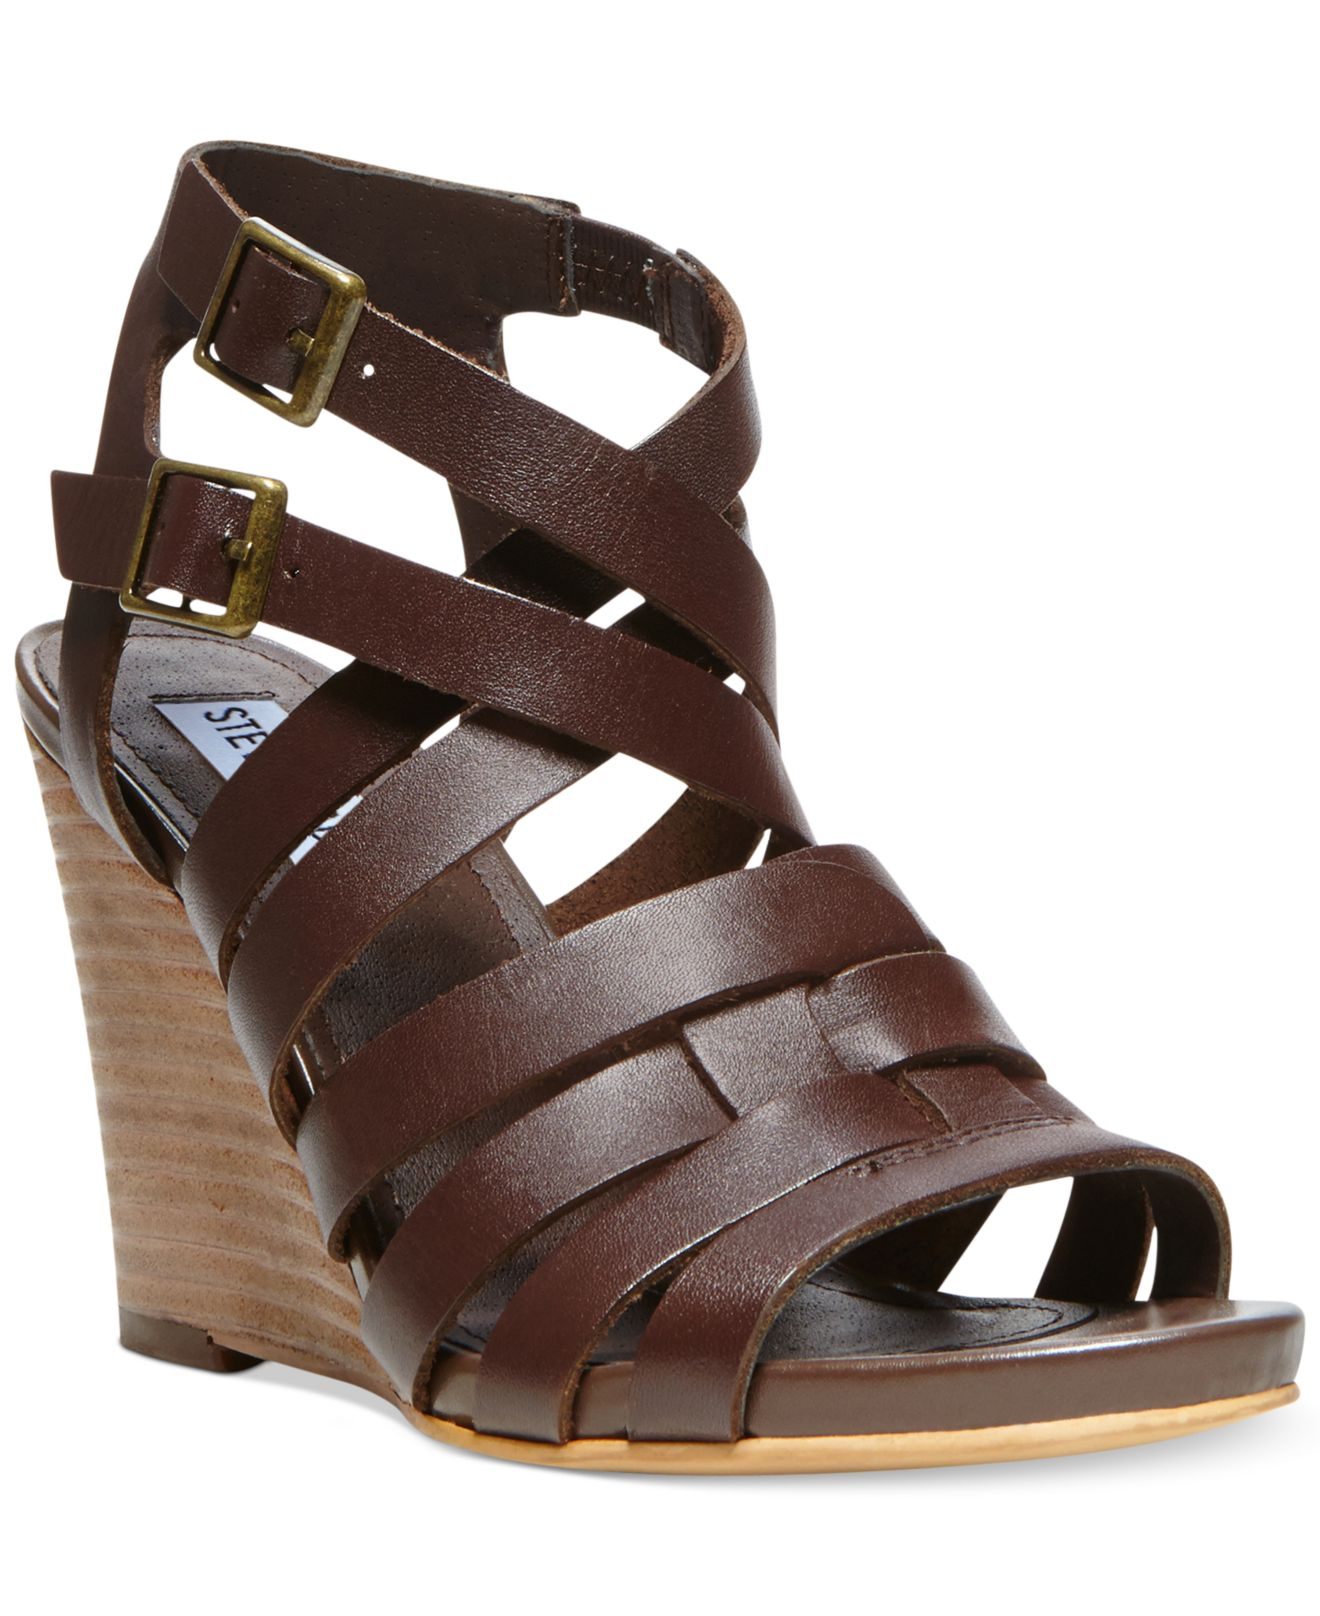 Lyst Steve Madden Venis Caged Wedge Sandals In Brown